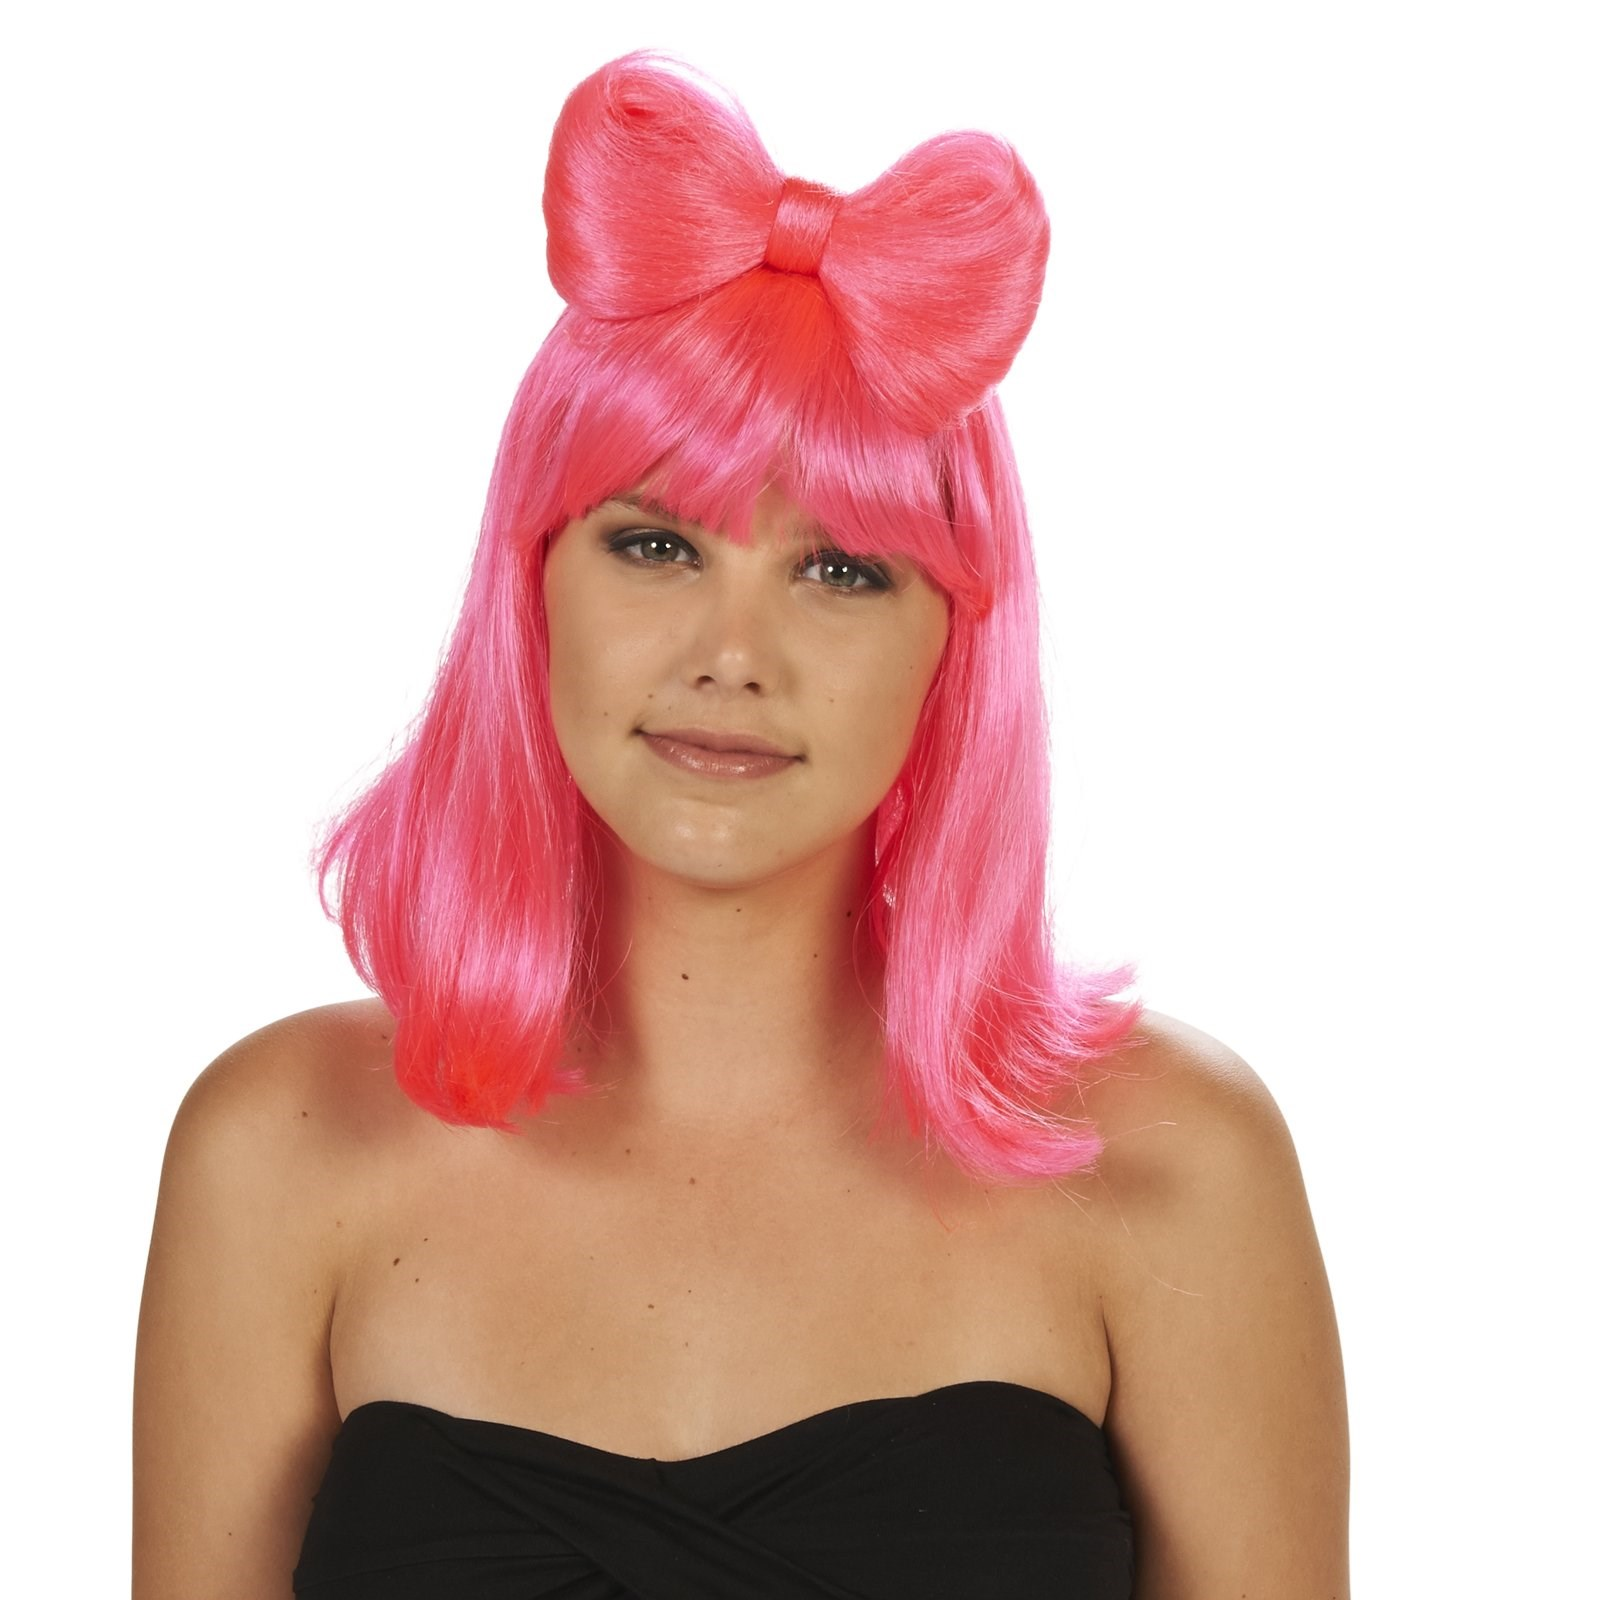 Costumes With A Pink Wig 42